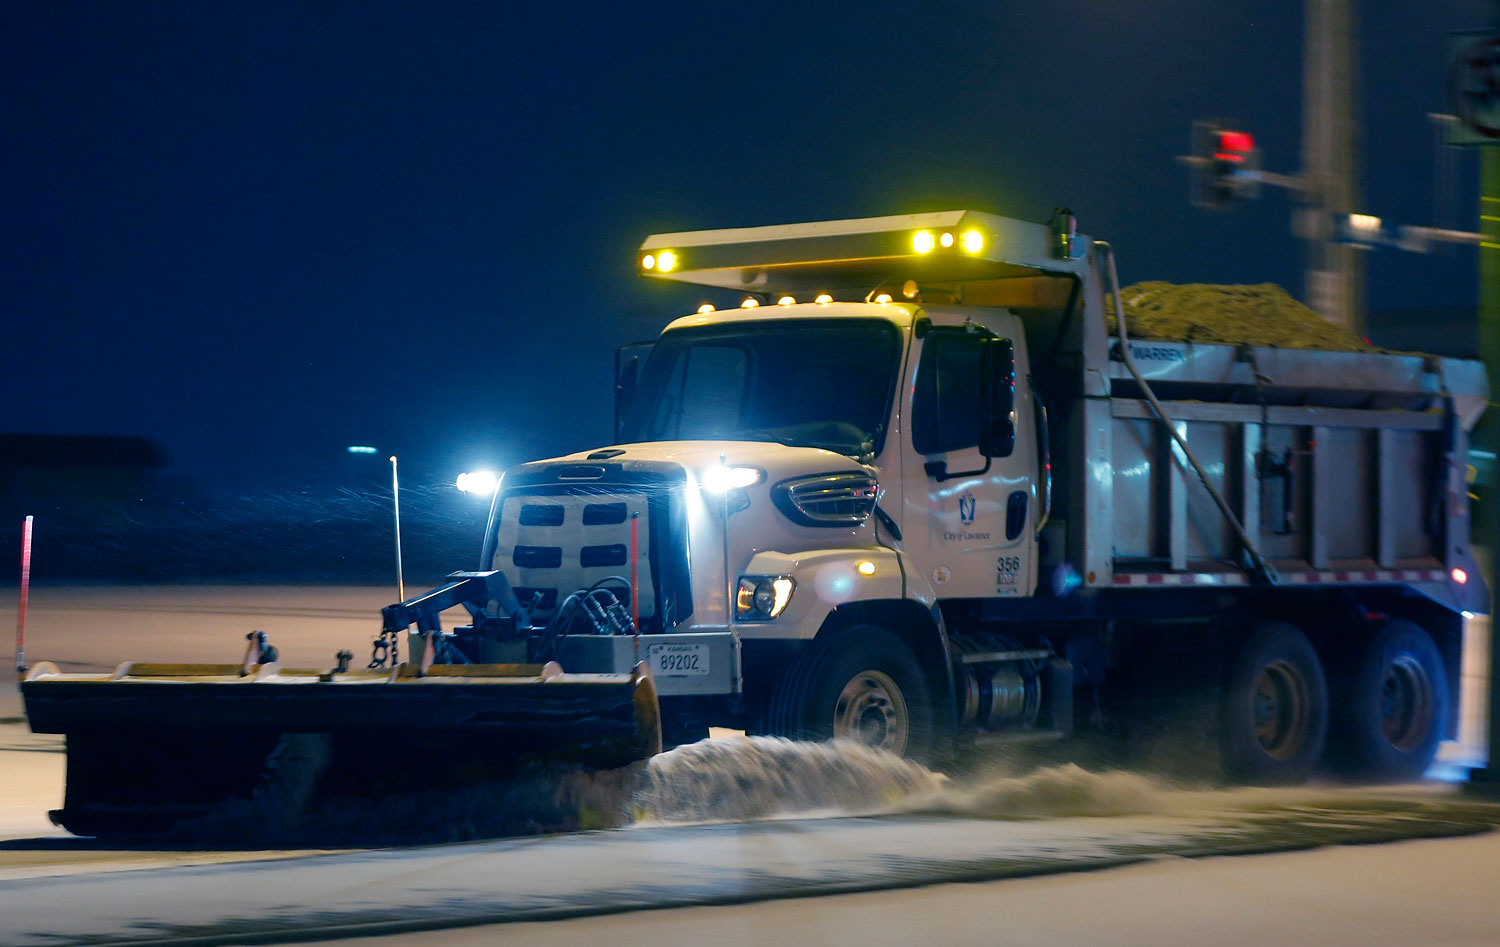 A city plow removes snow from an intersection along 6th Street in Lawrence, Kan., March 2, 2014.